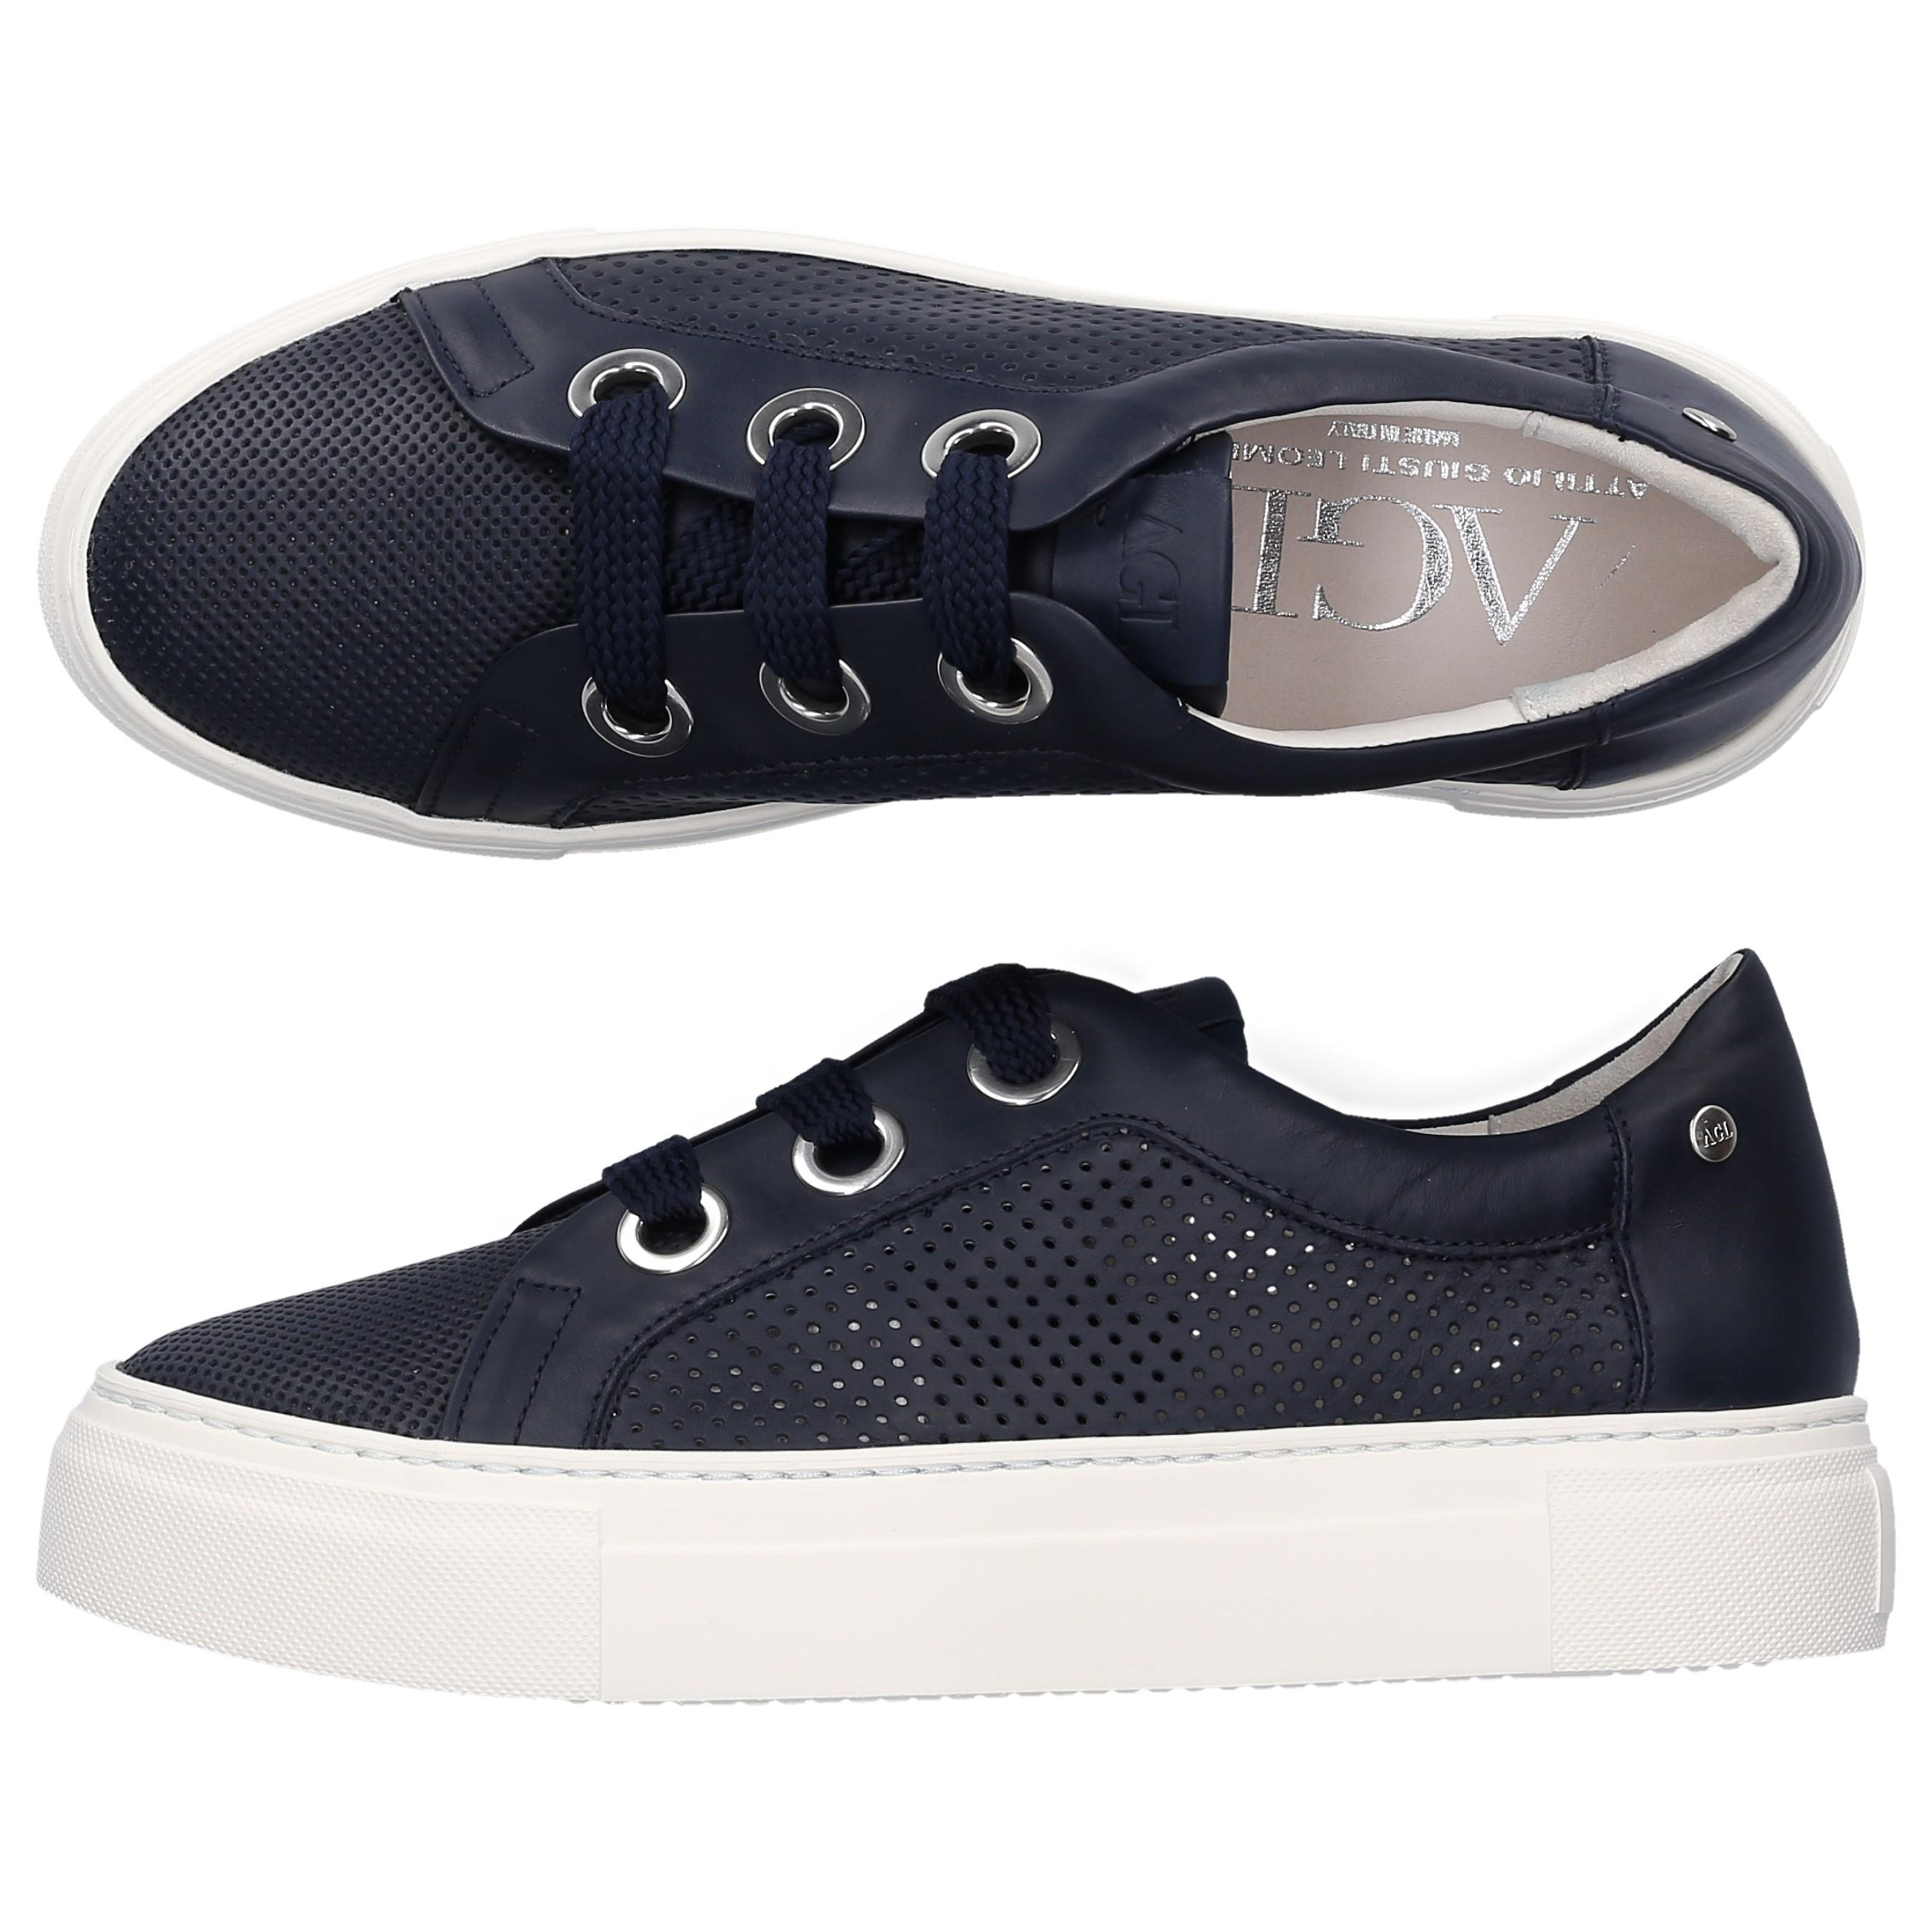 51a65ca20 Agl Attilio Giusti Leombruni - Low-top Sneakers 925173 Calfskin Hole  Pattern Logo Blue -. View fullscreen